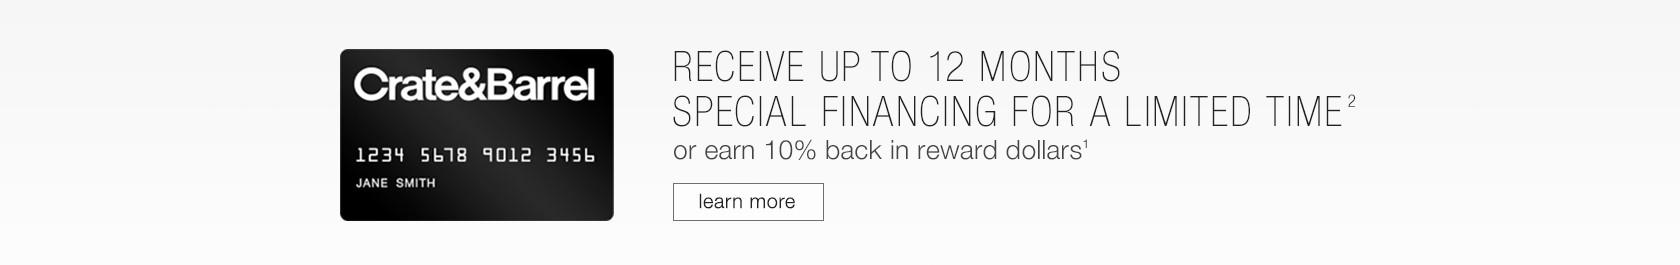 Receive up to 12 Months Special Financing for a Limited Time or earn 10% back in reward dollars